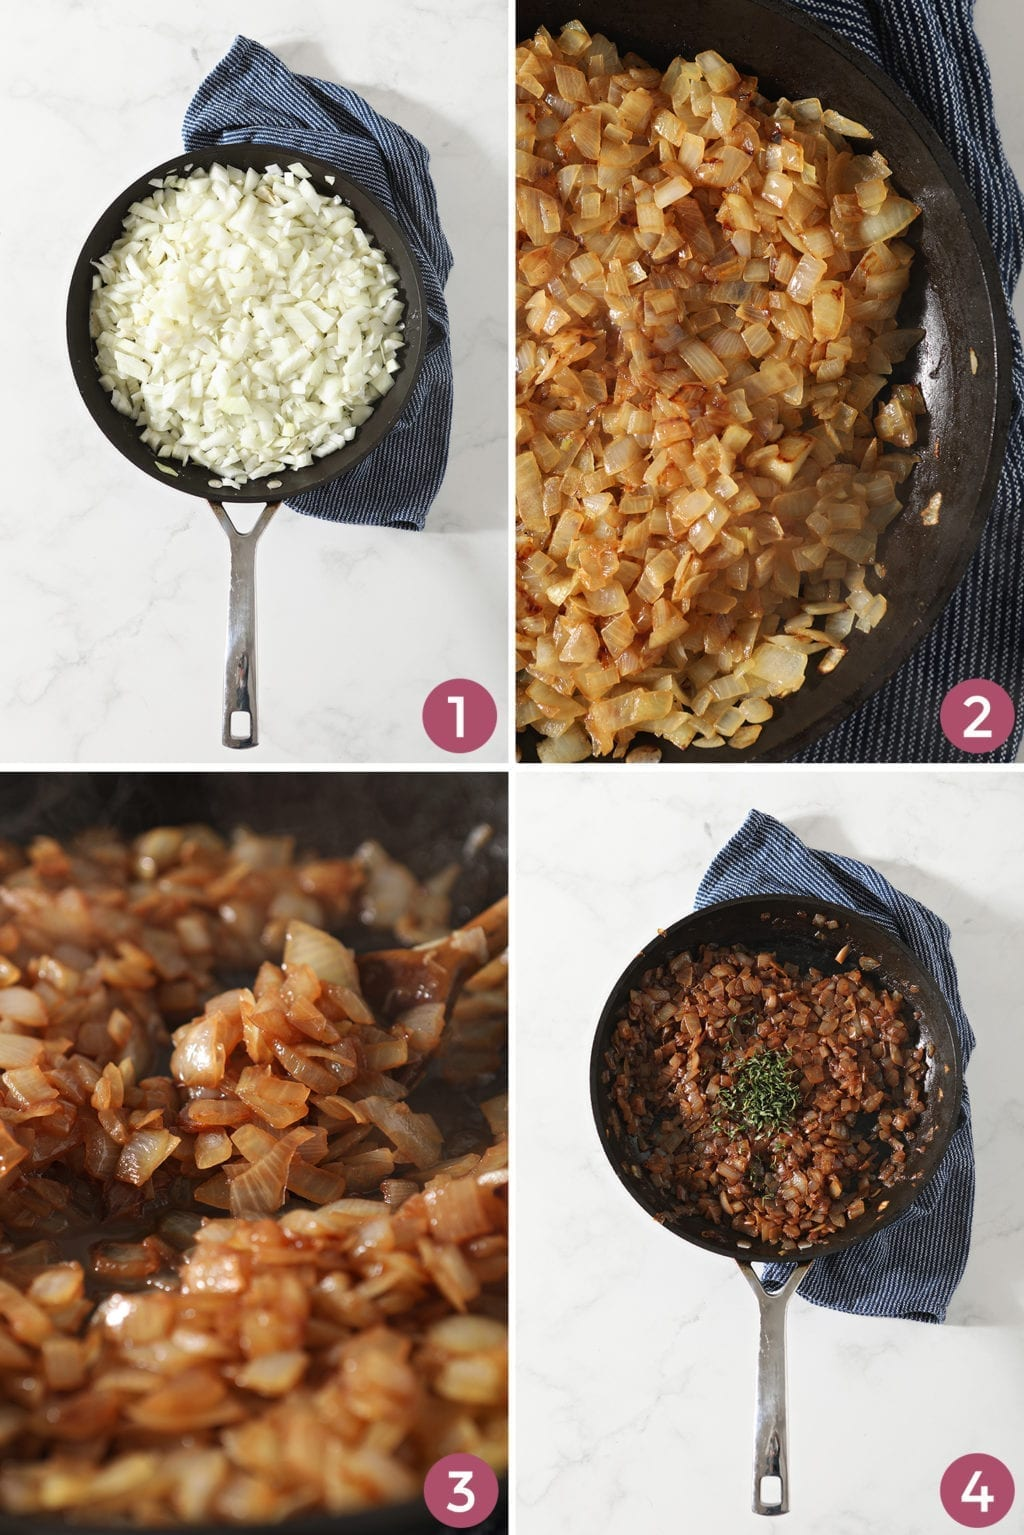 Collage of four images showing the stages of French Onion Marmalade in a skillet from above